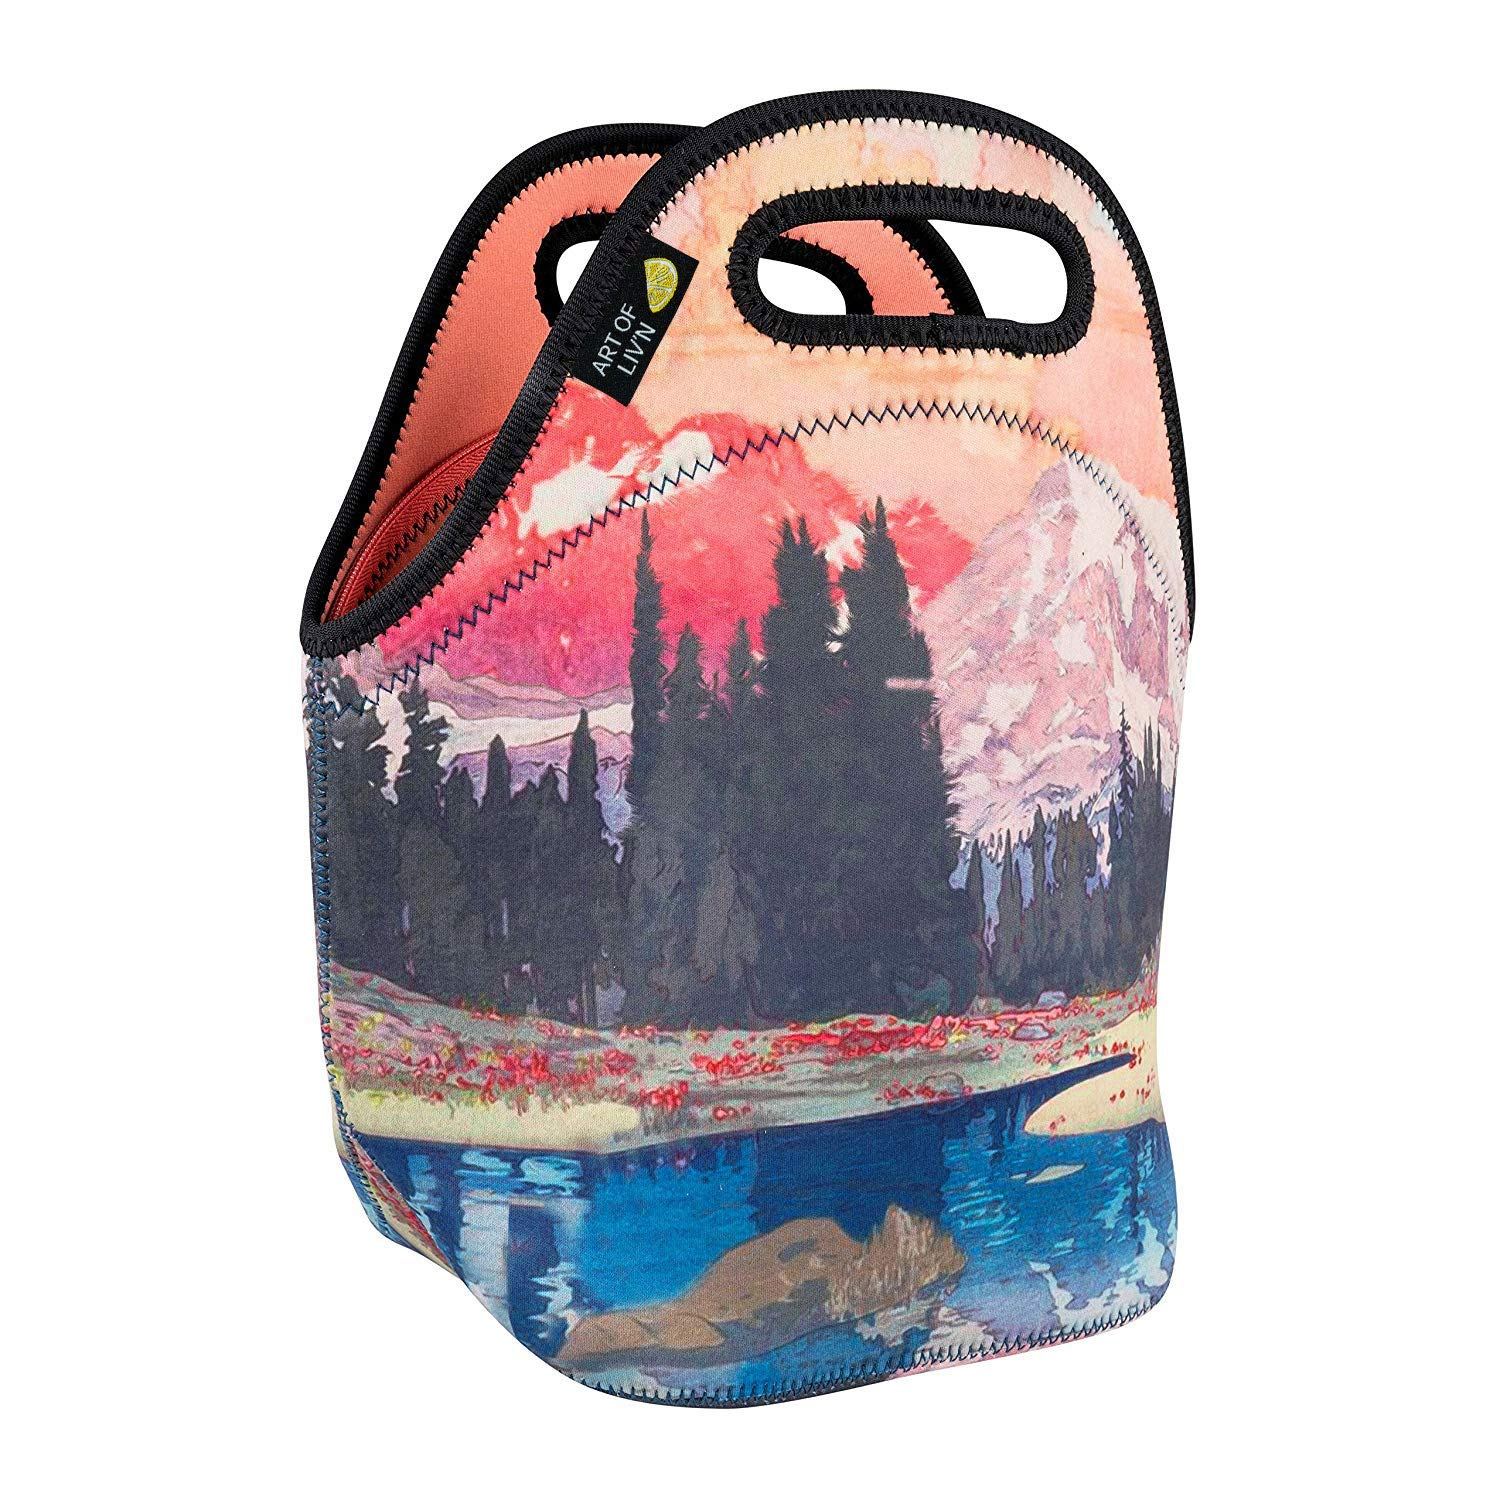 ART OF LUNCH Isulated Neoprene Lunch Bag for Women, Men and Kids, Reusable Soft Lunch Tote for Work and School - Design by Kijiermono (Portugal) - Storms over Keiisino